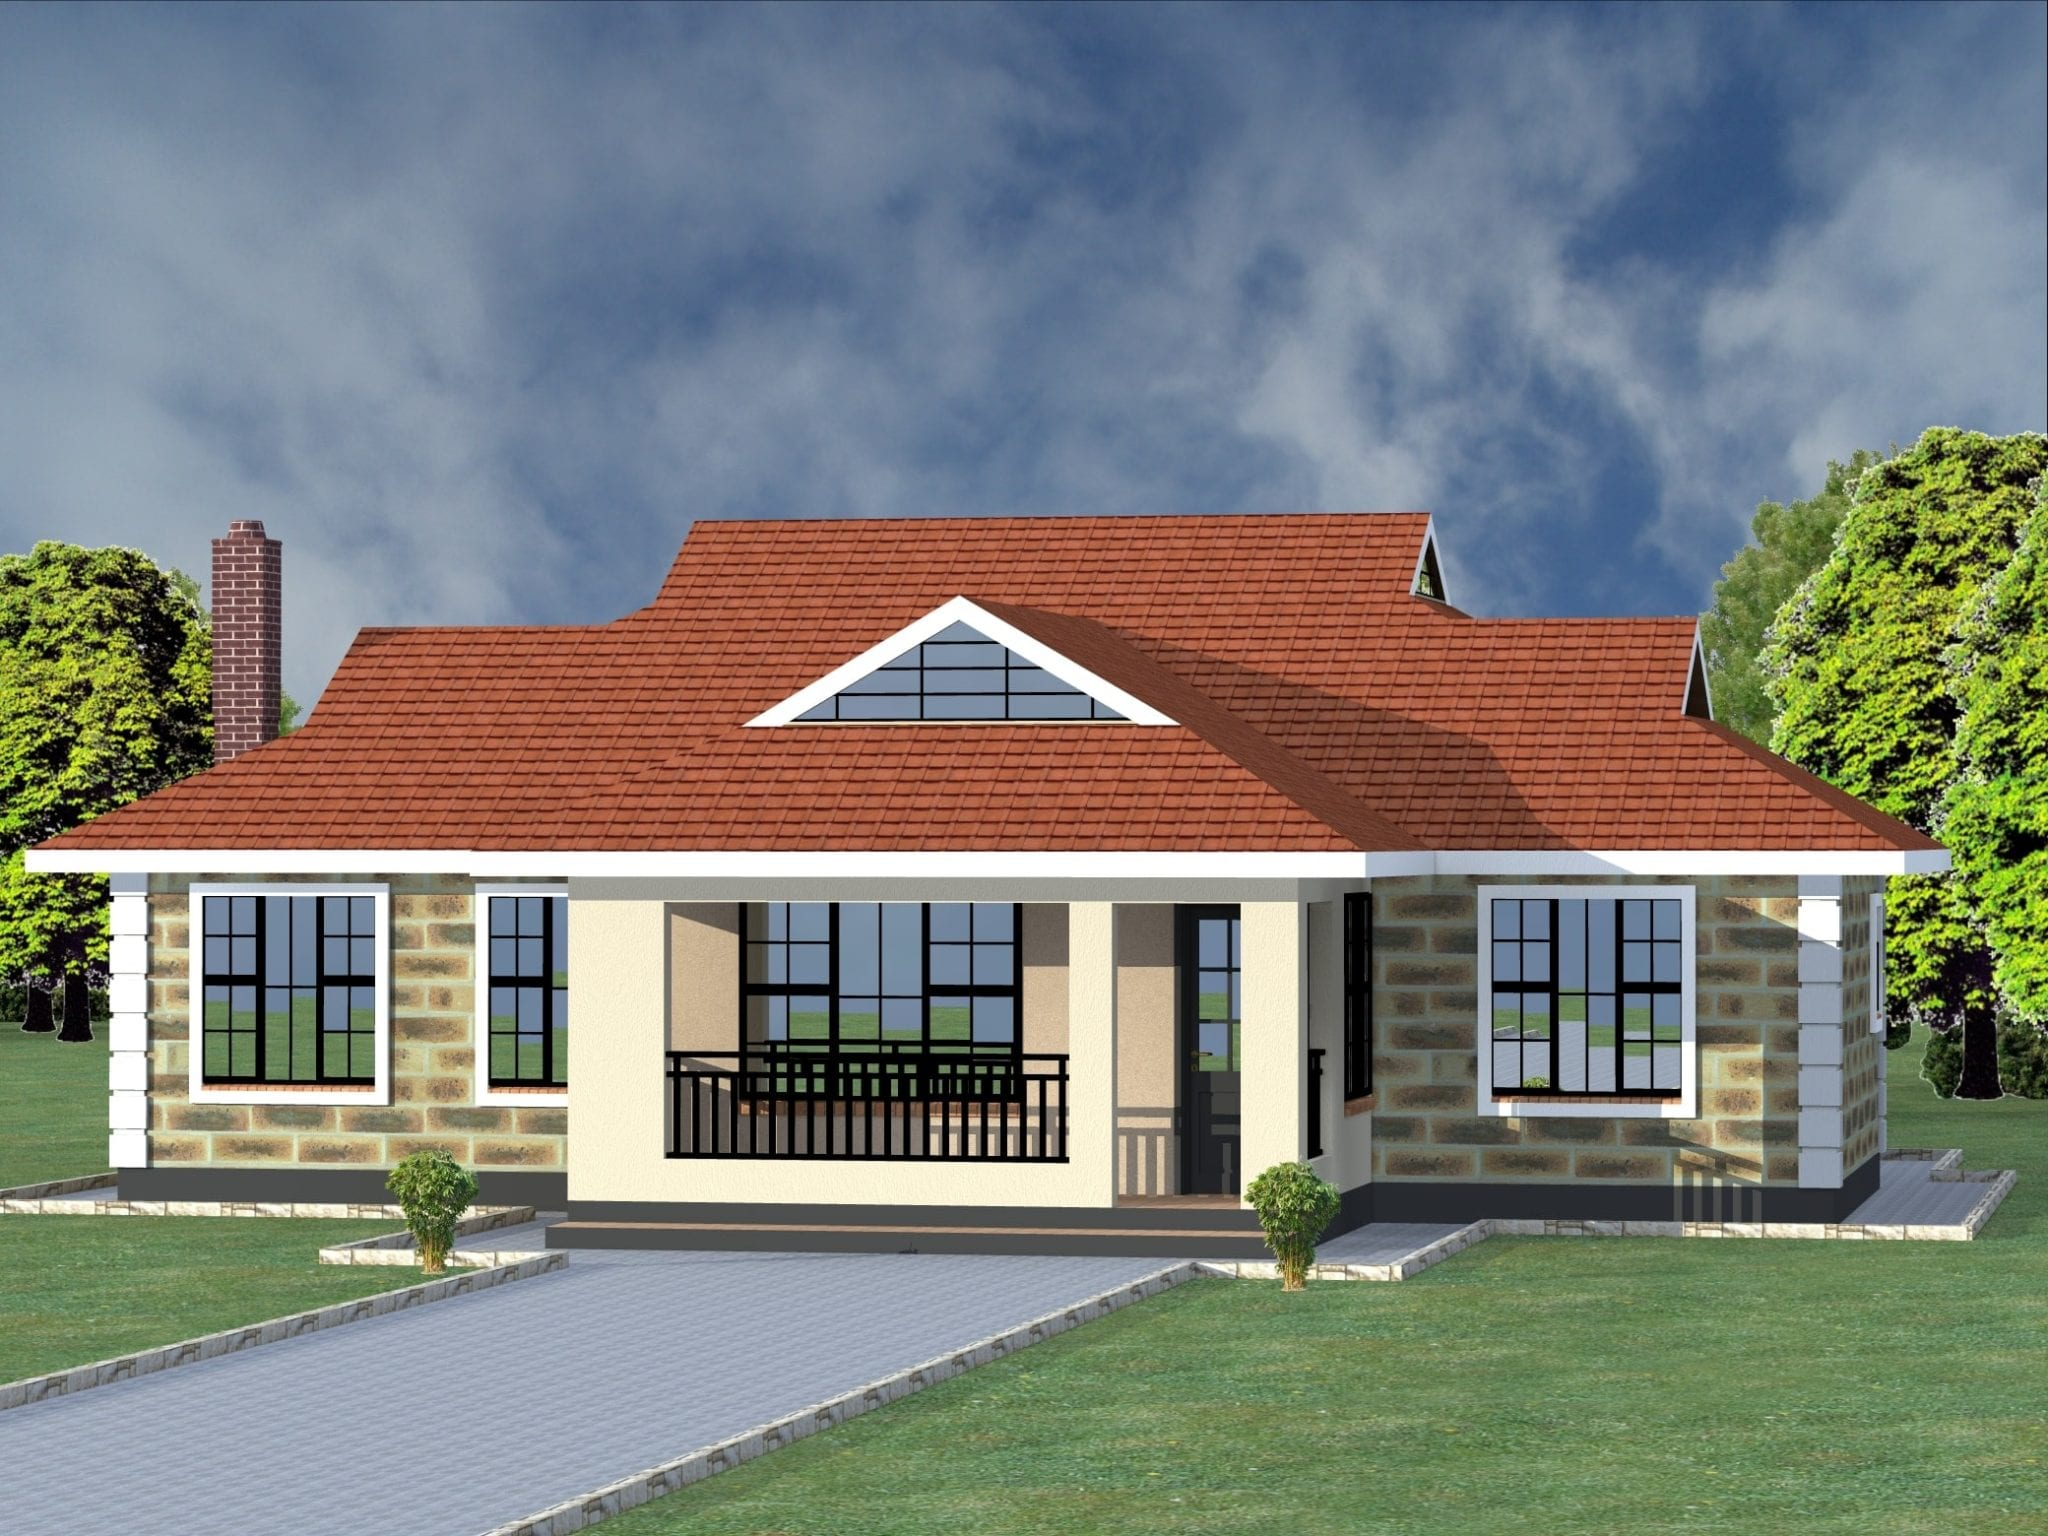 4 Bedroom House Plans Single Story | HPD Consult